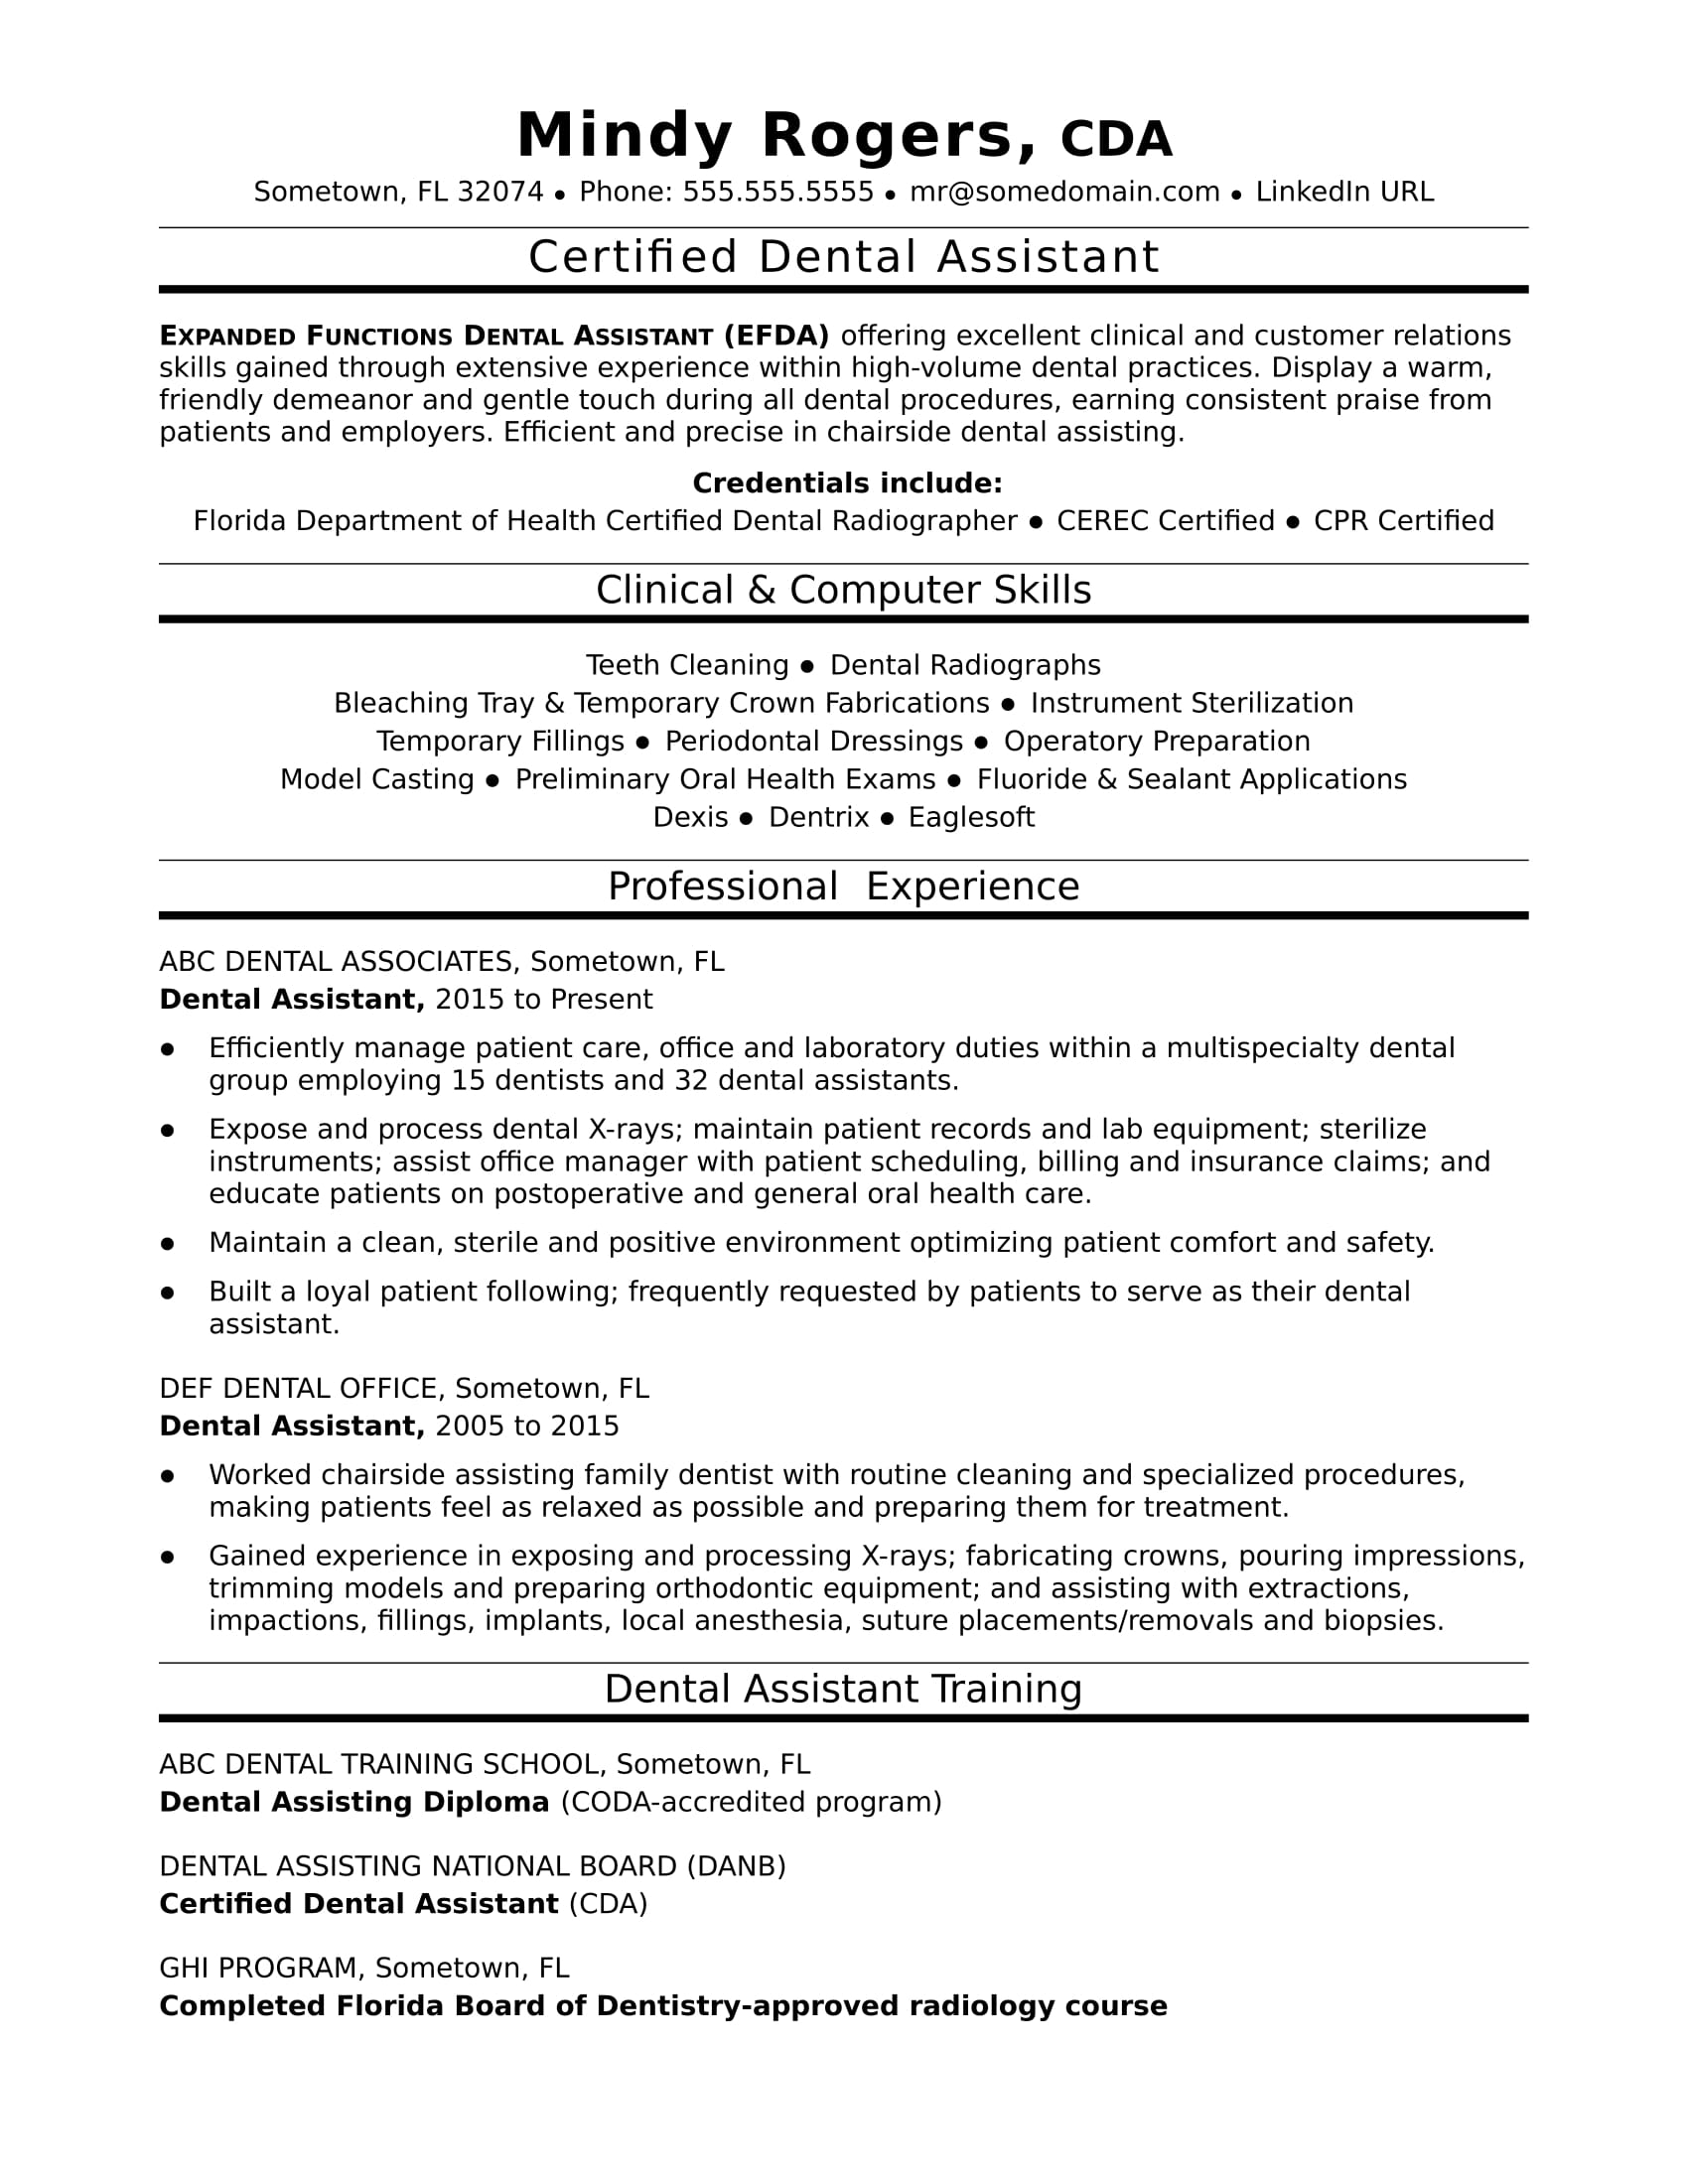 Dental assistant resume sample monster dental assistant resume sample yelopaper Image collections